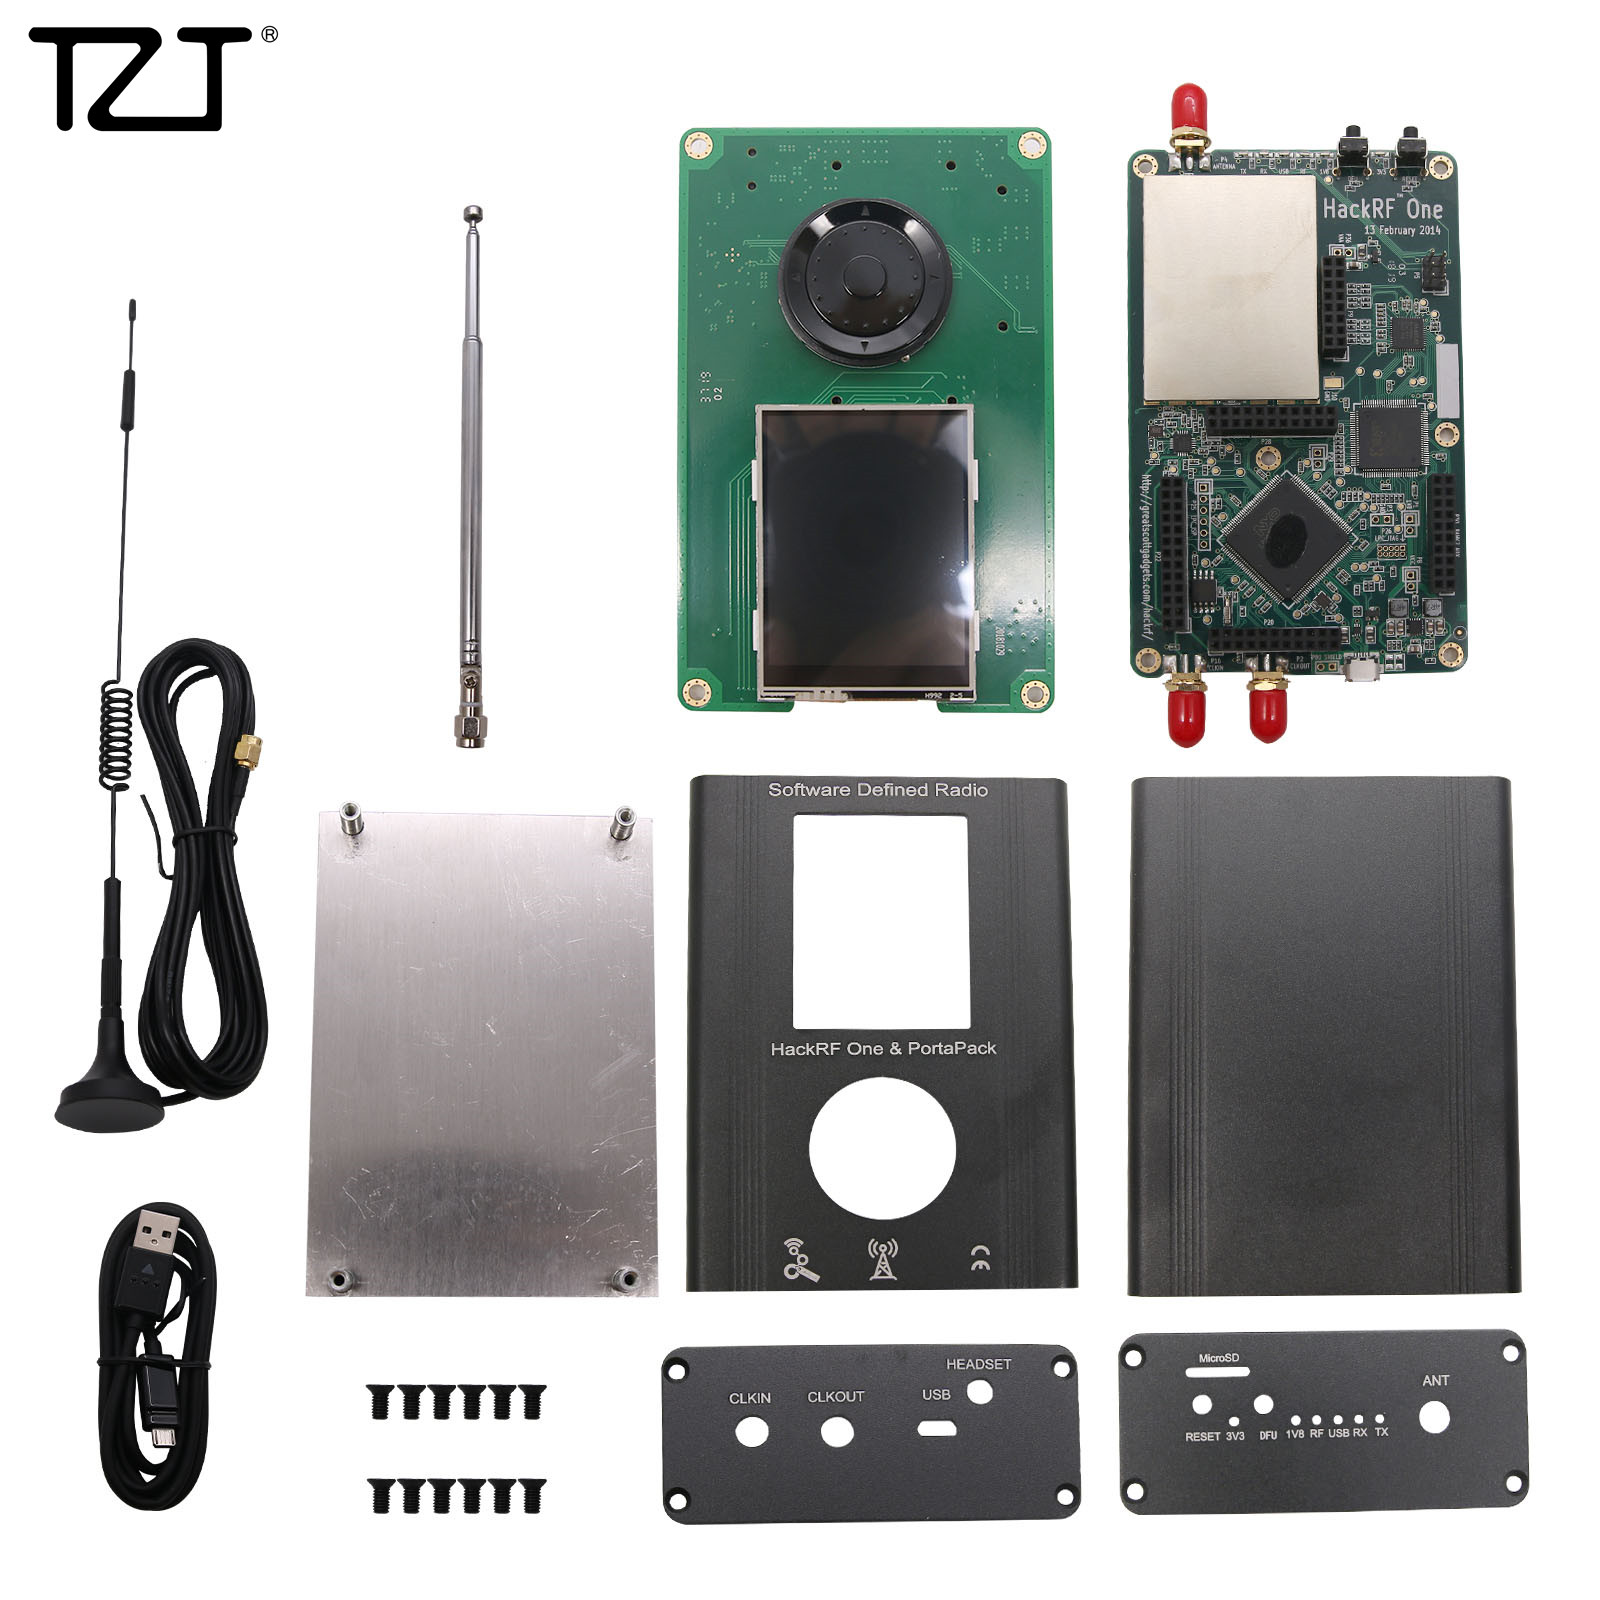 TZT PortaPack + HackRF One SDR + Metal Case + 10M 0.5ppm TXCO + Havoc Firmware Kit